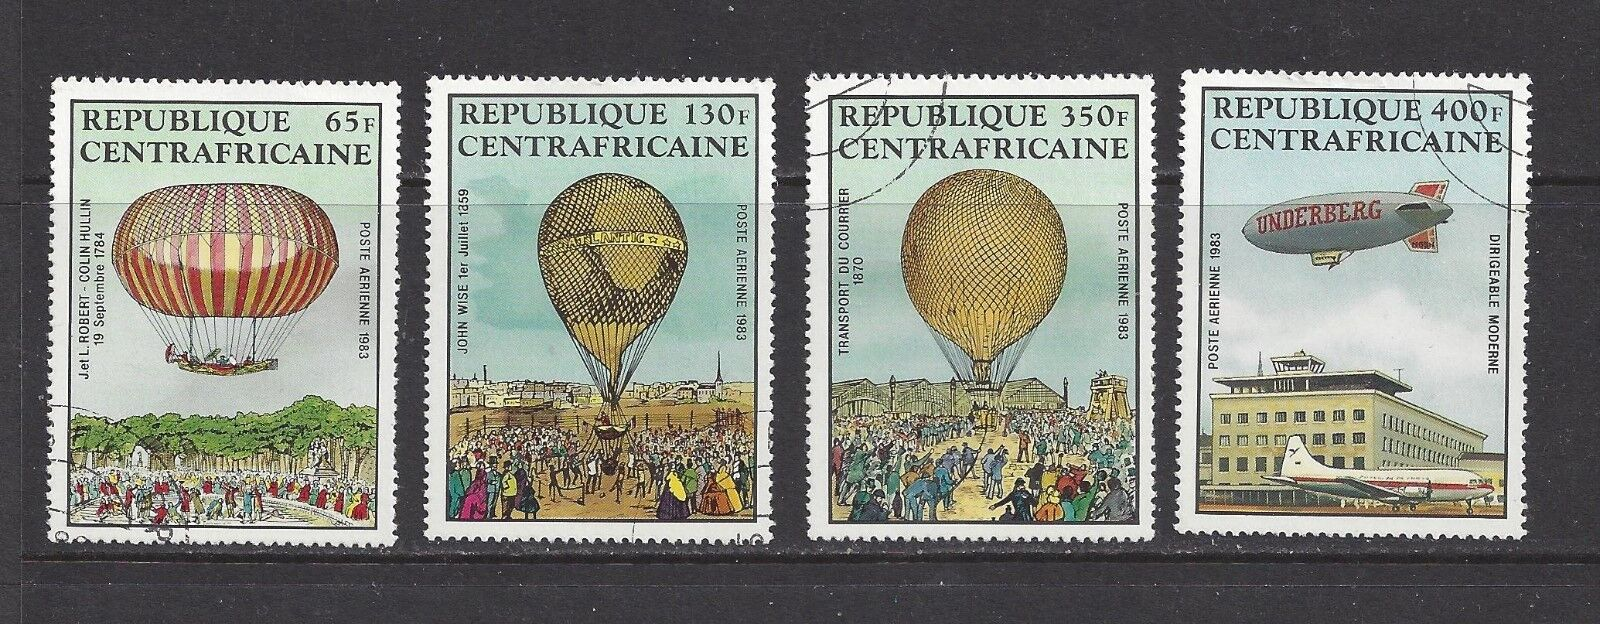 CENTRAL AFRICA - C282 - C285 - USED - 1983 - MANNED FLIGHT BICENTENARY